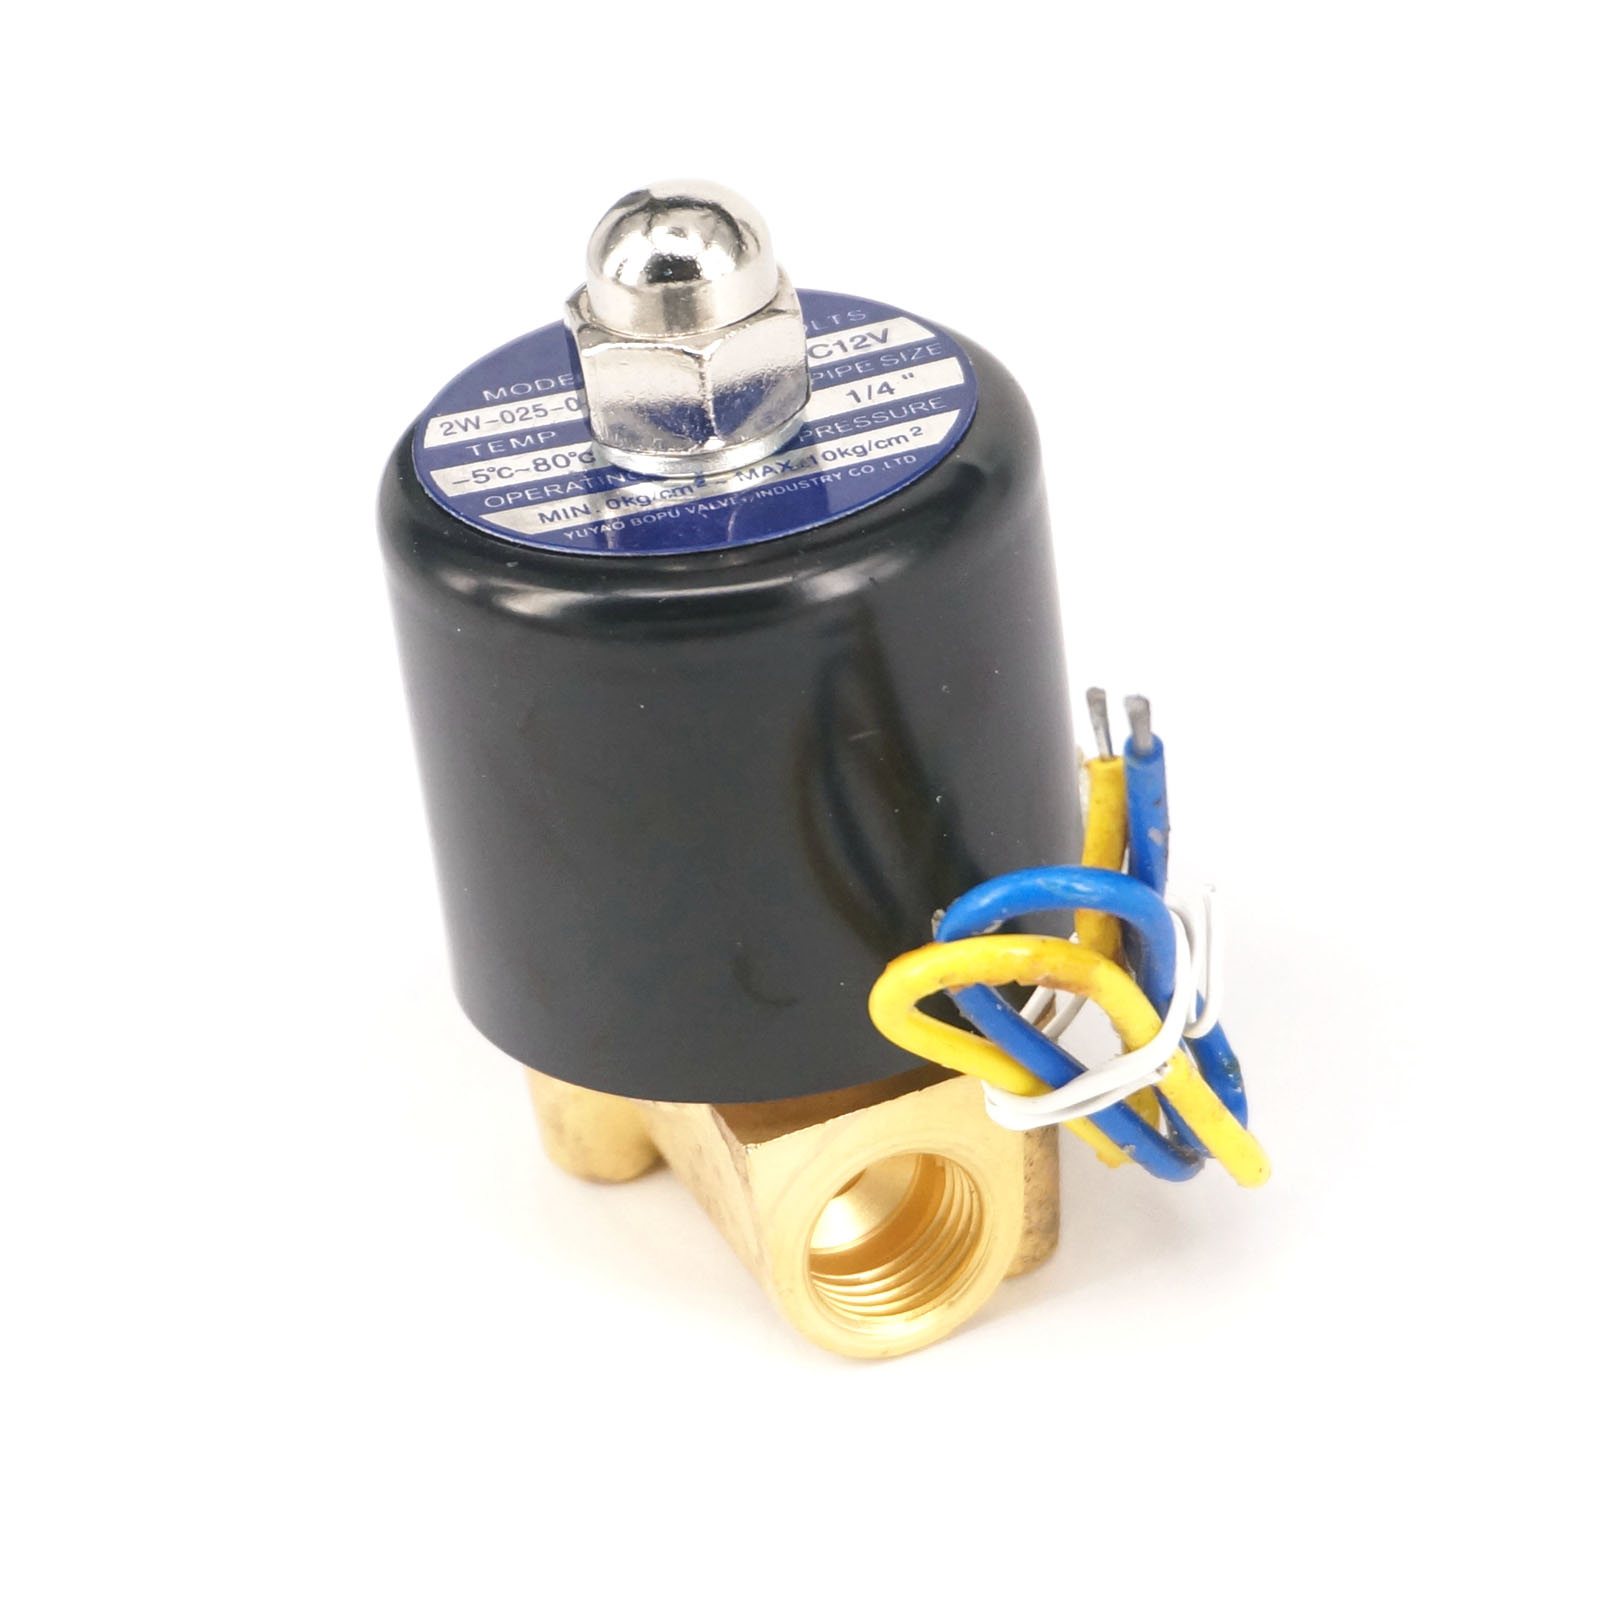 DC12V N/C 2 Way 1/4BSP Gas Water Pneumatic Electric Solenoid Valve Oil 2W-025-08 Wire Lead Type 3 8 electric solenoid valve water air n c all brass valve body 2w040 10 dc12v ac110v